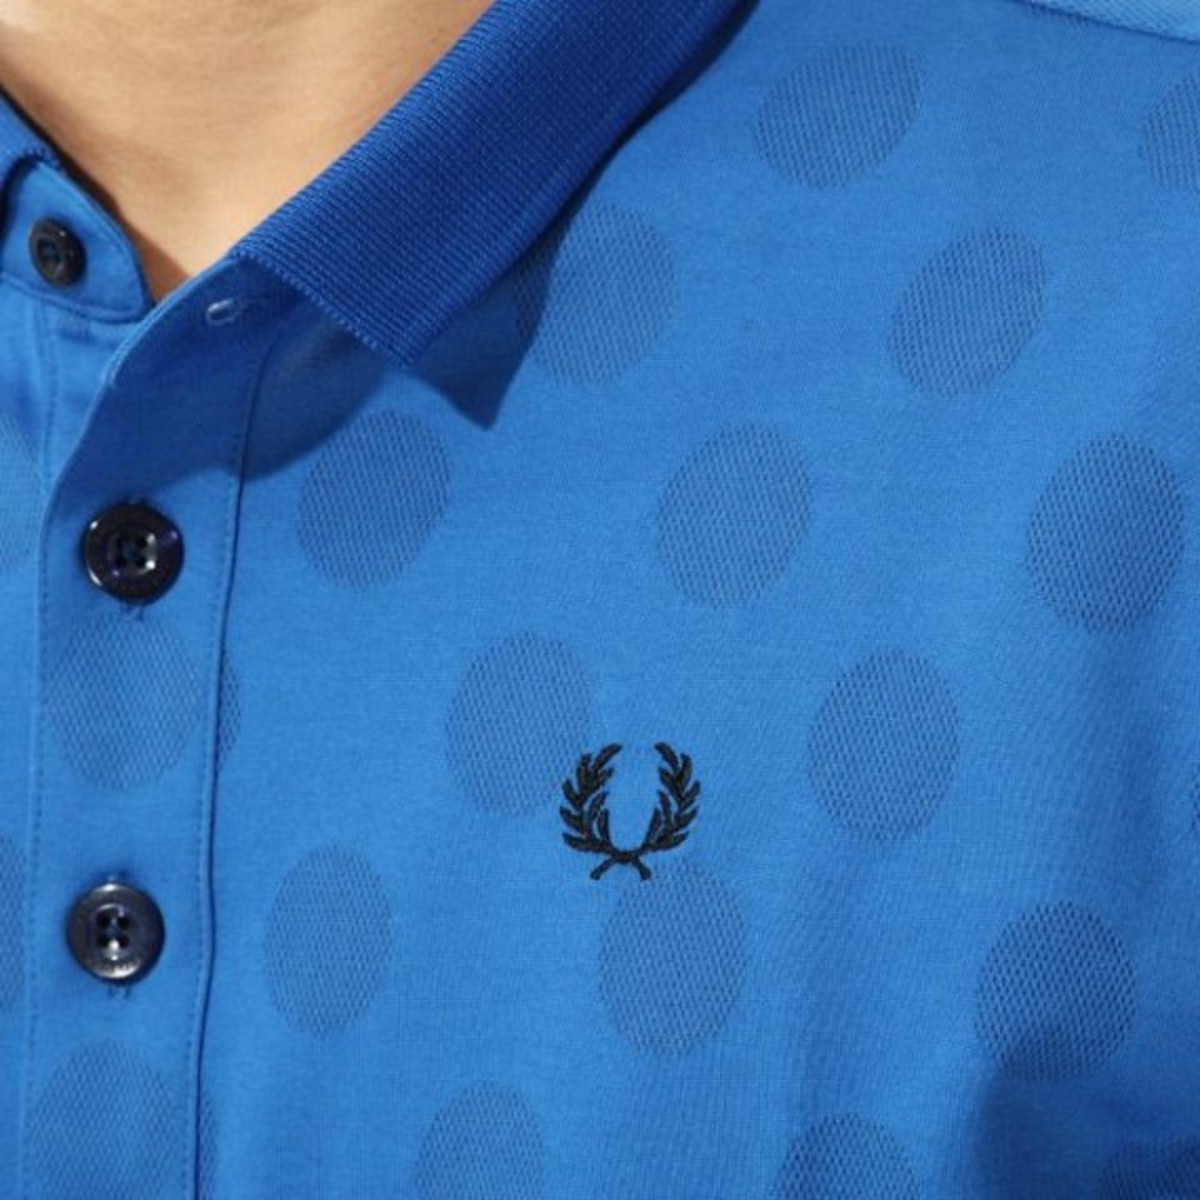 dot-polo-shirt-07